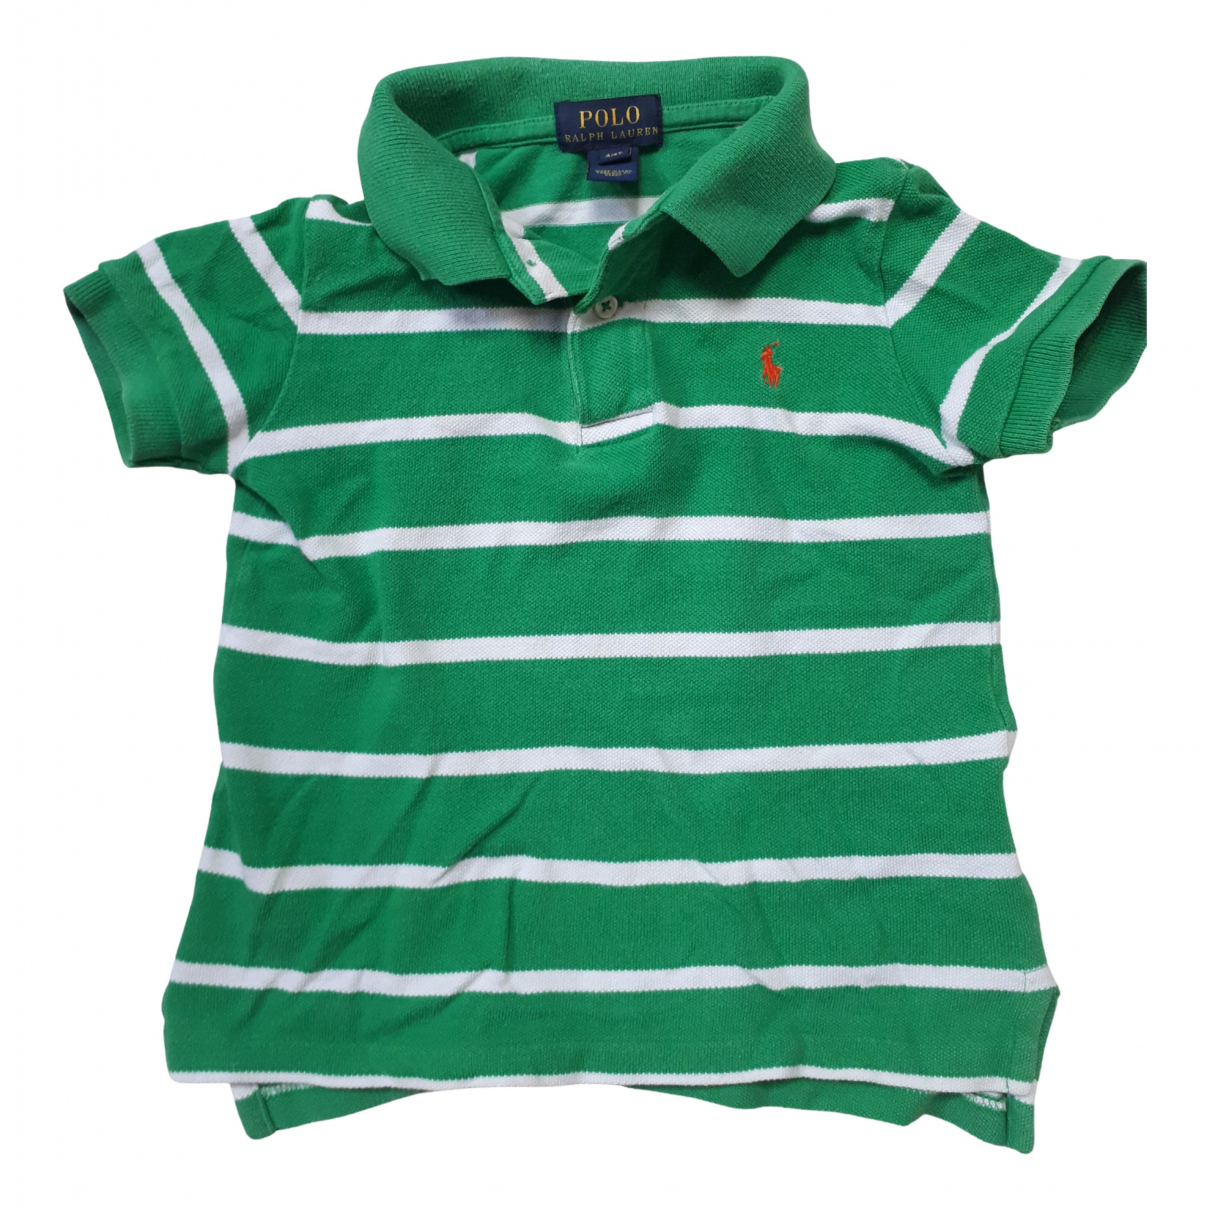 Polo Ralph Lauren N Green Cotton  top for Kids 4 years - up to 102cm FR